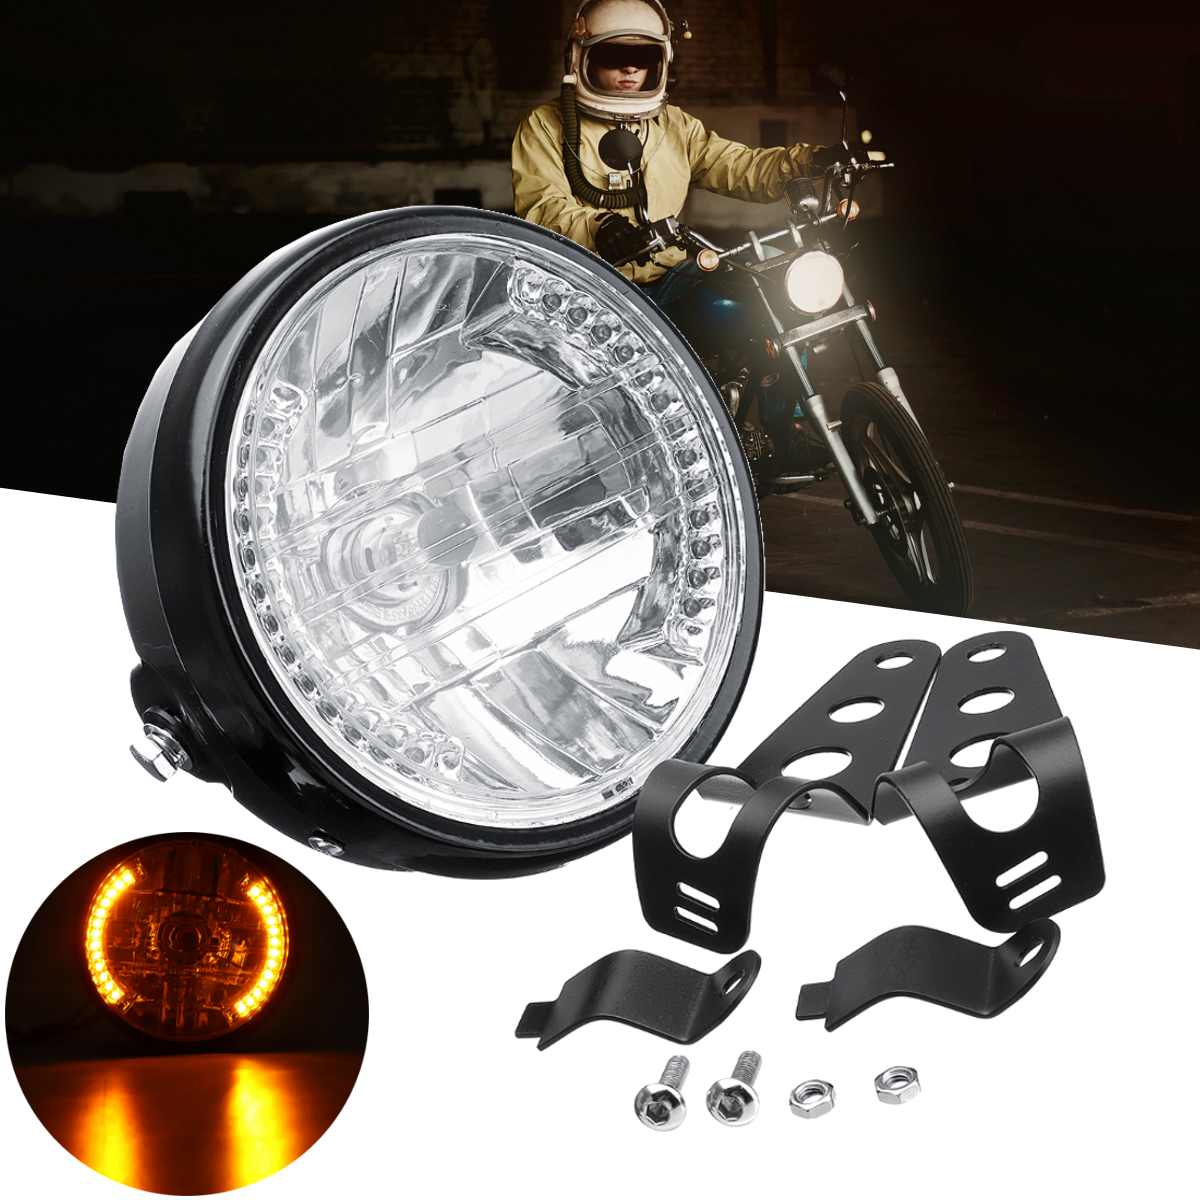 7 Inch H4 35W Halogen Bulb Motorcycle ATV Headlight With Turn Light With Mounting Bracket